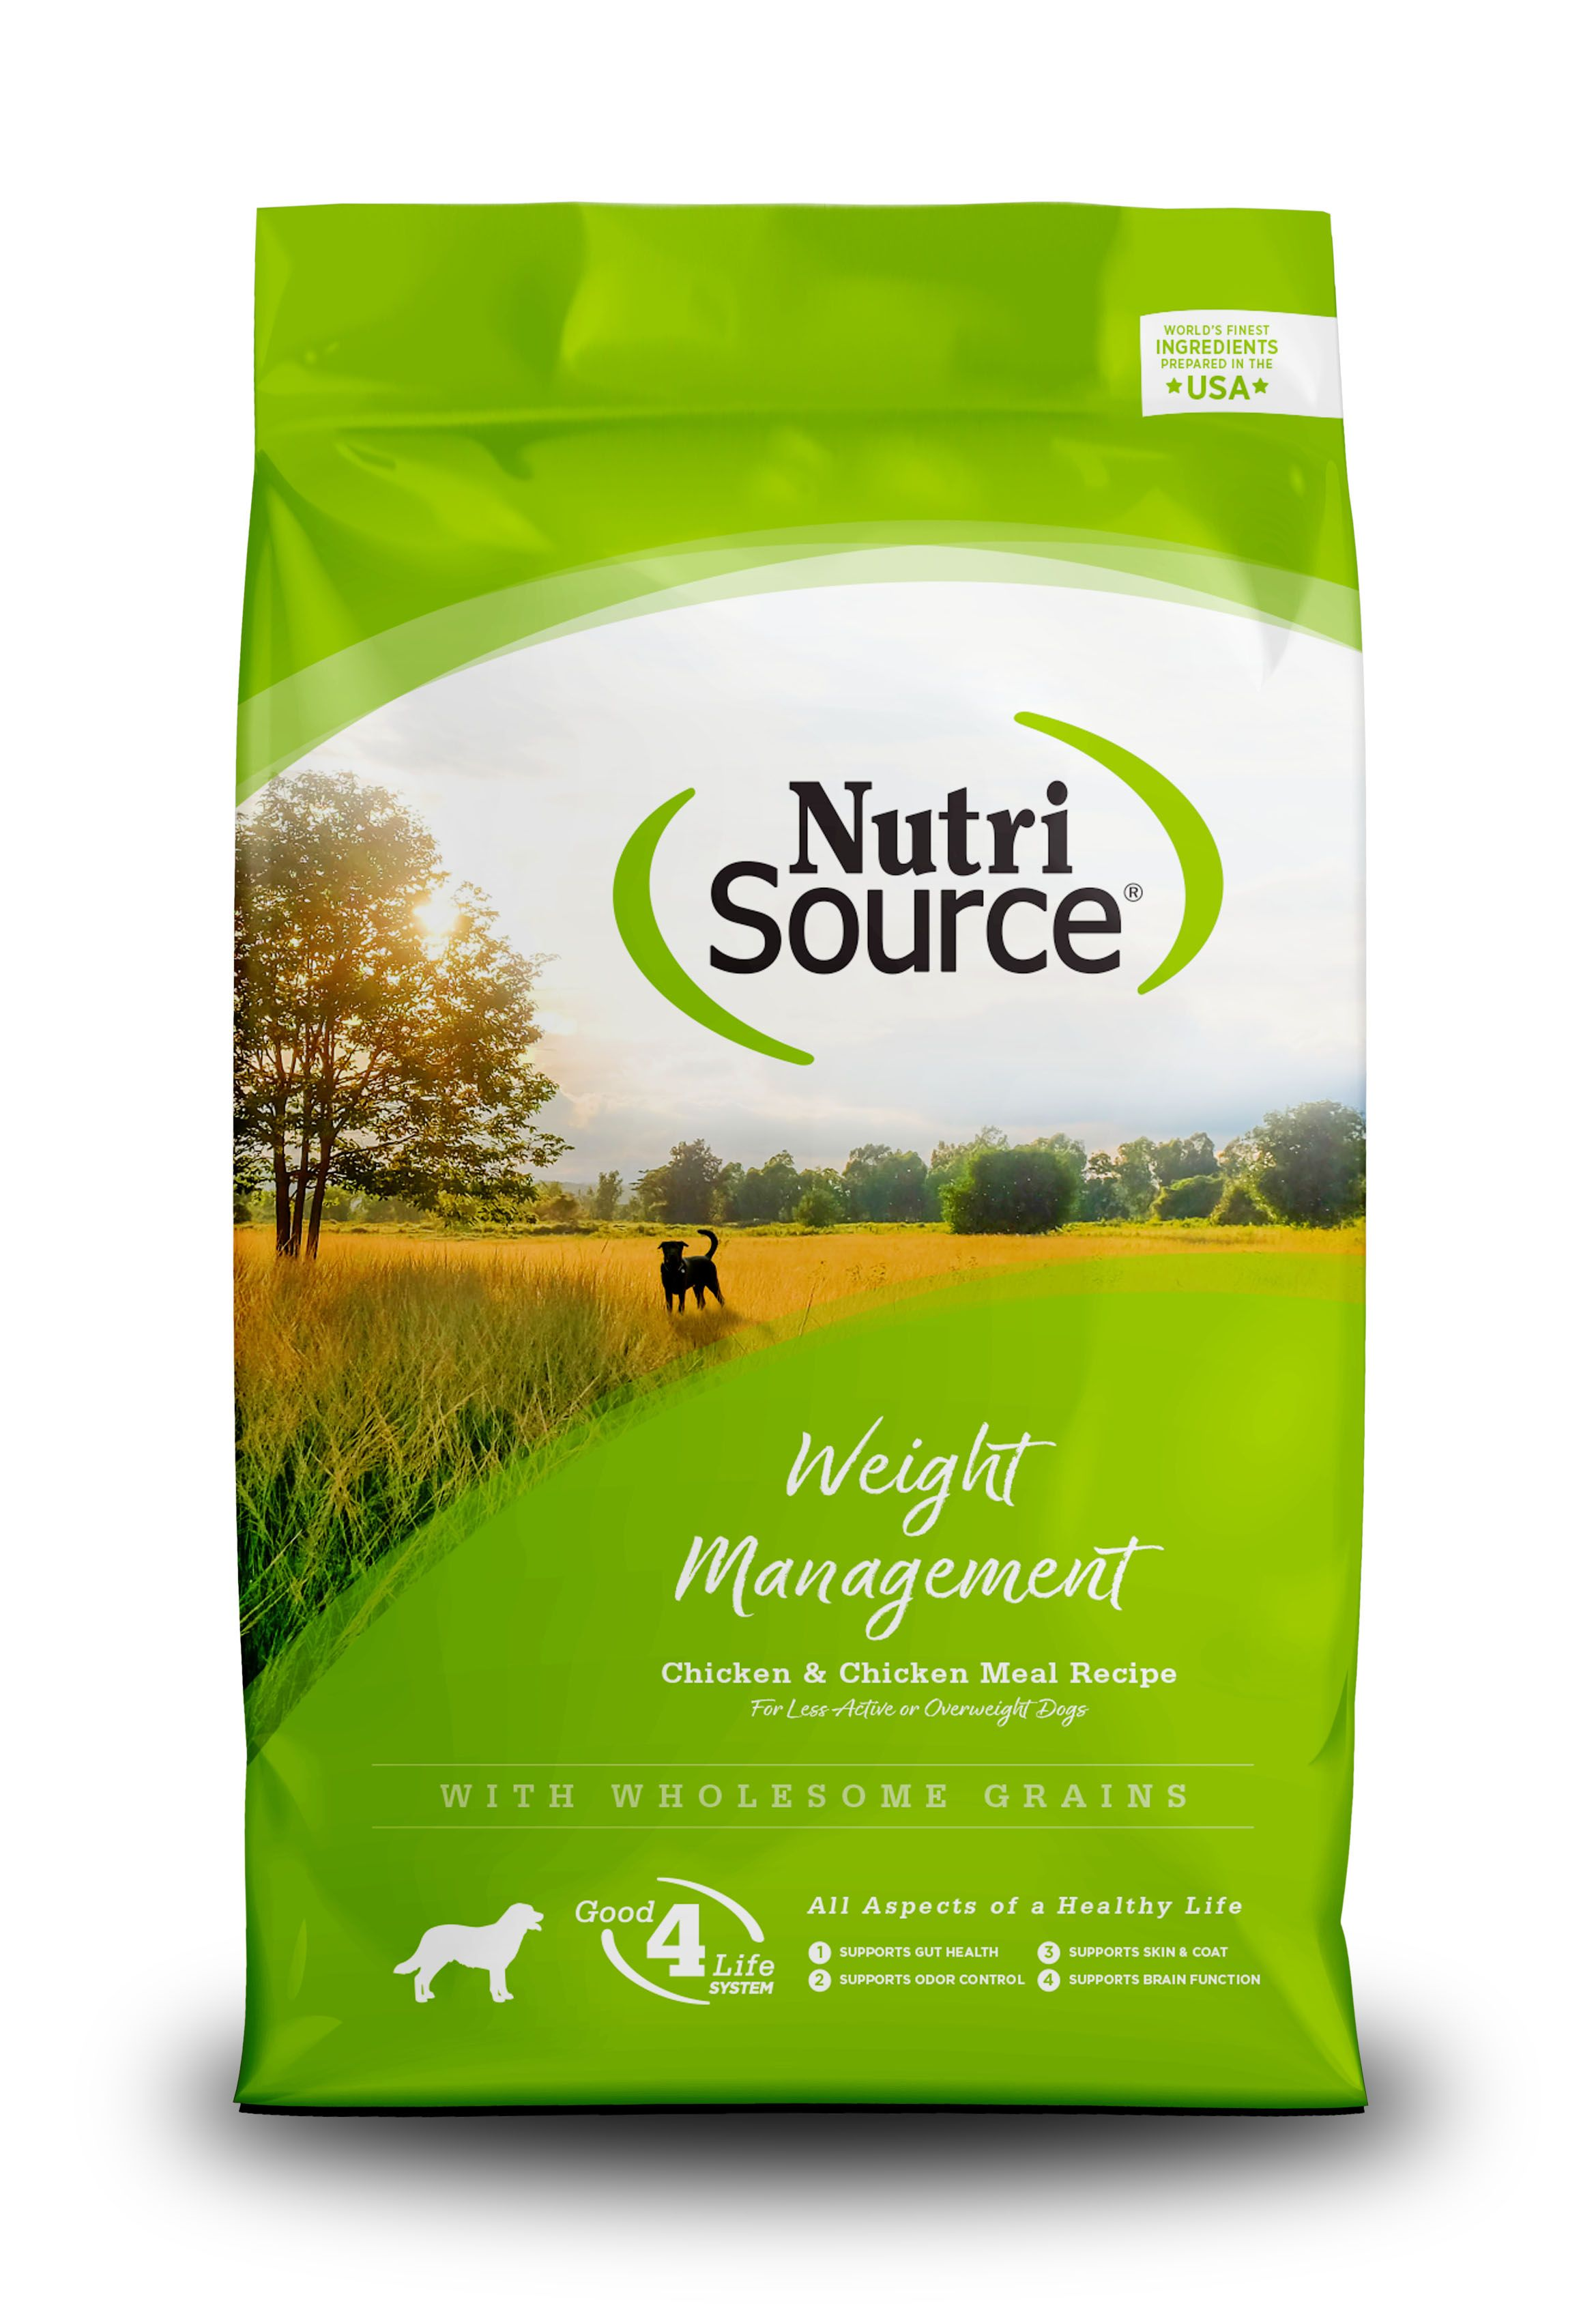 NutriSource Weight Management Chicken and Chicken Meal Dry Dog Food Image